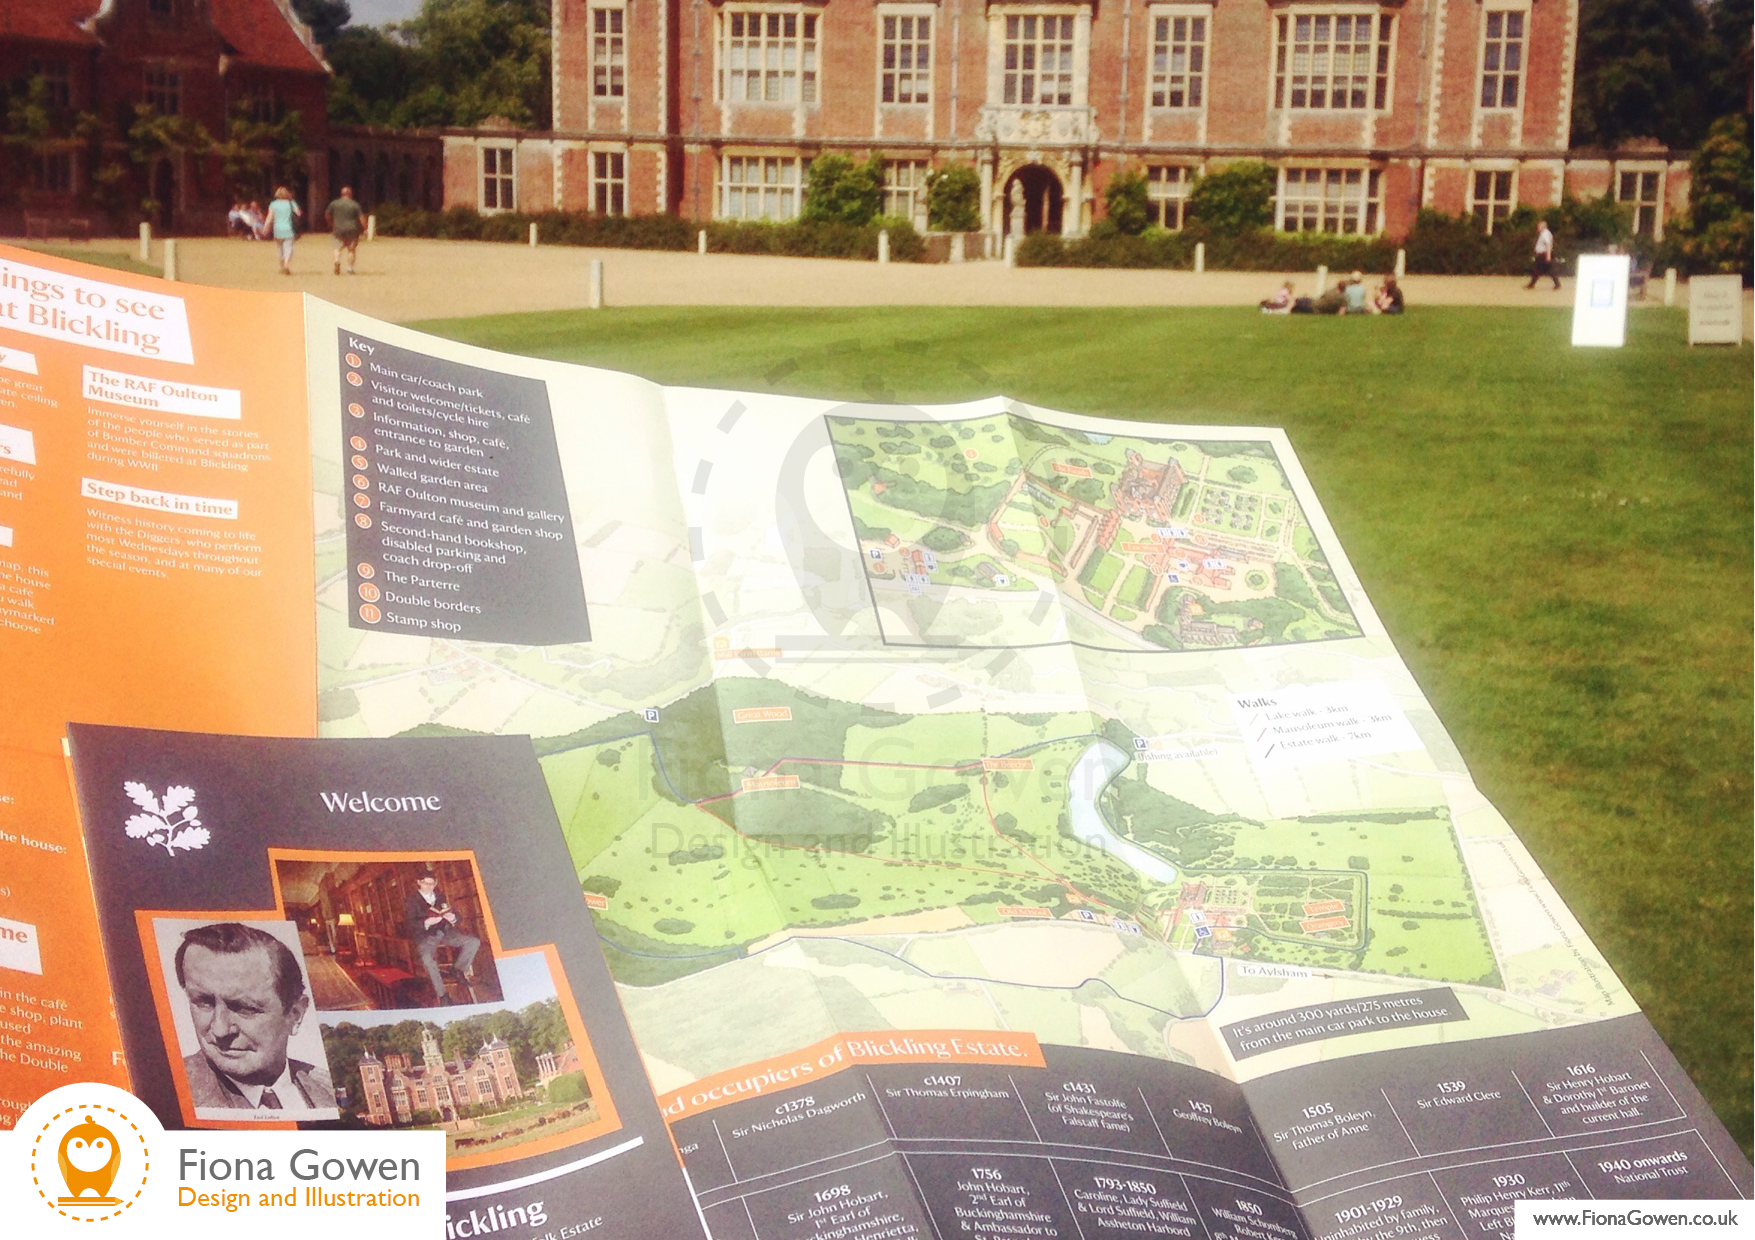 National Trust visitor leaflet for Blickling Estate, Featuring illustrated visitor map. Design and illustration by Fiona Gowen